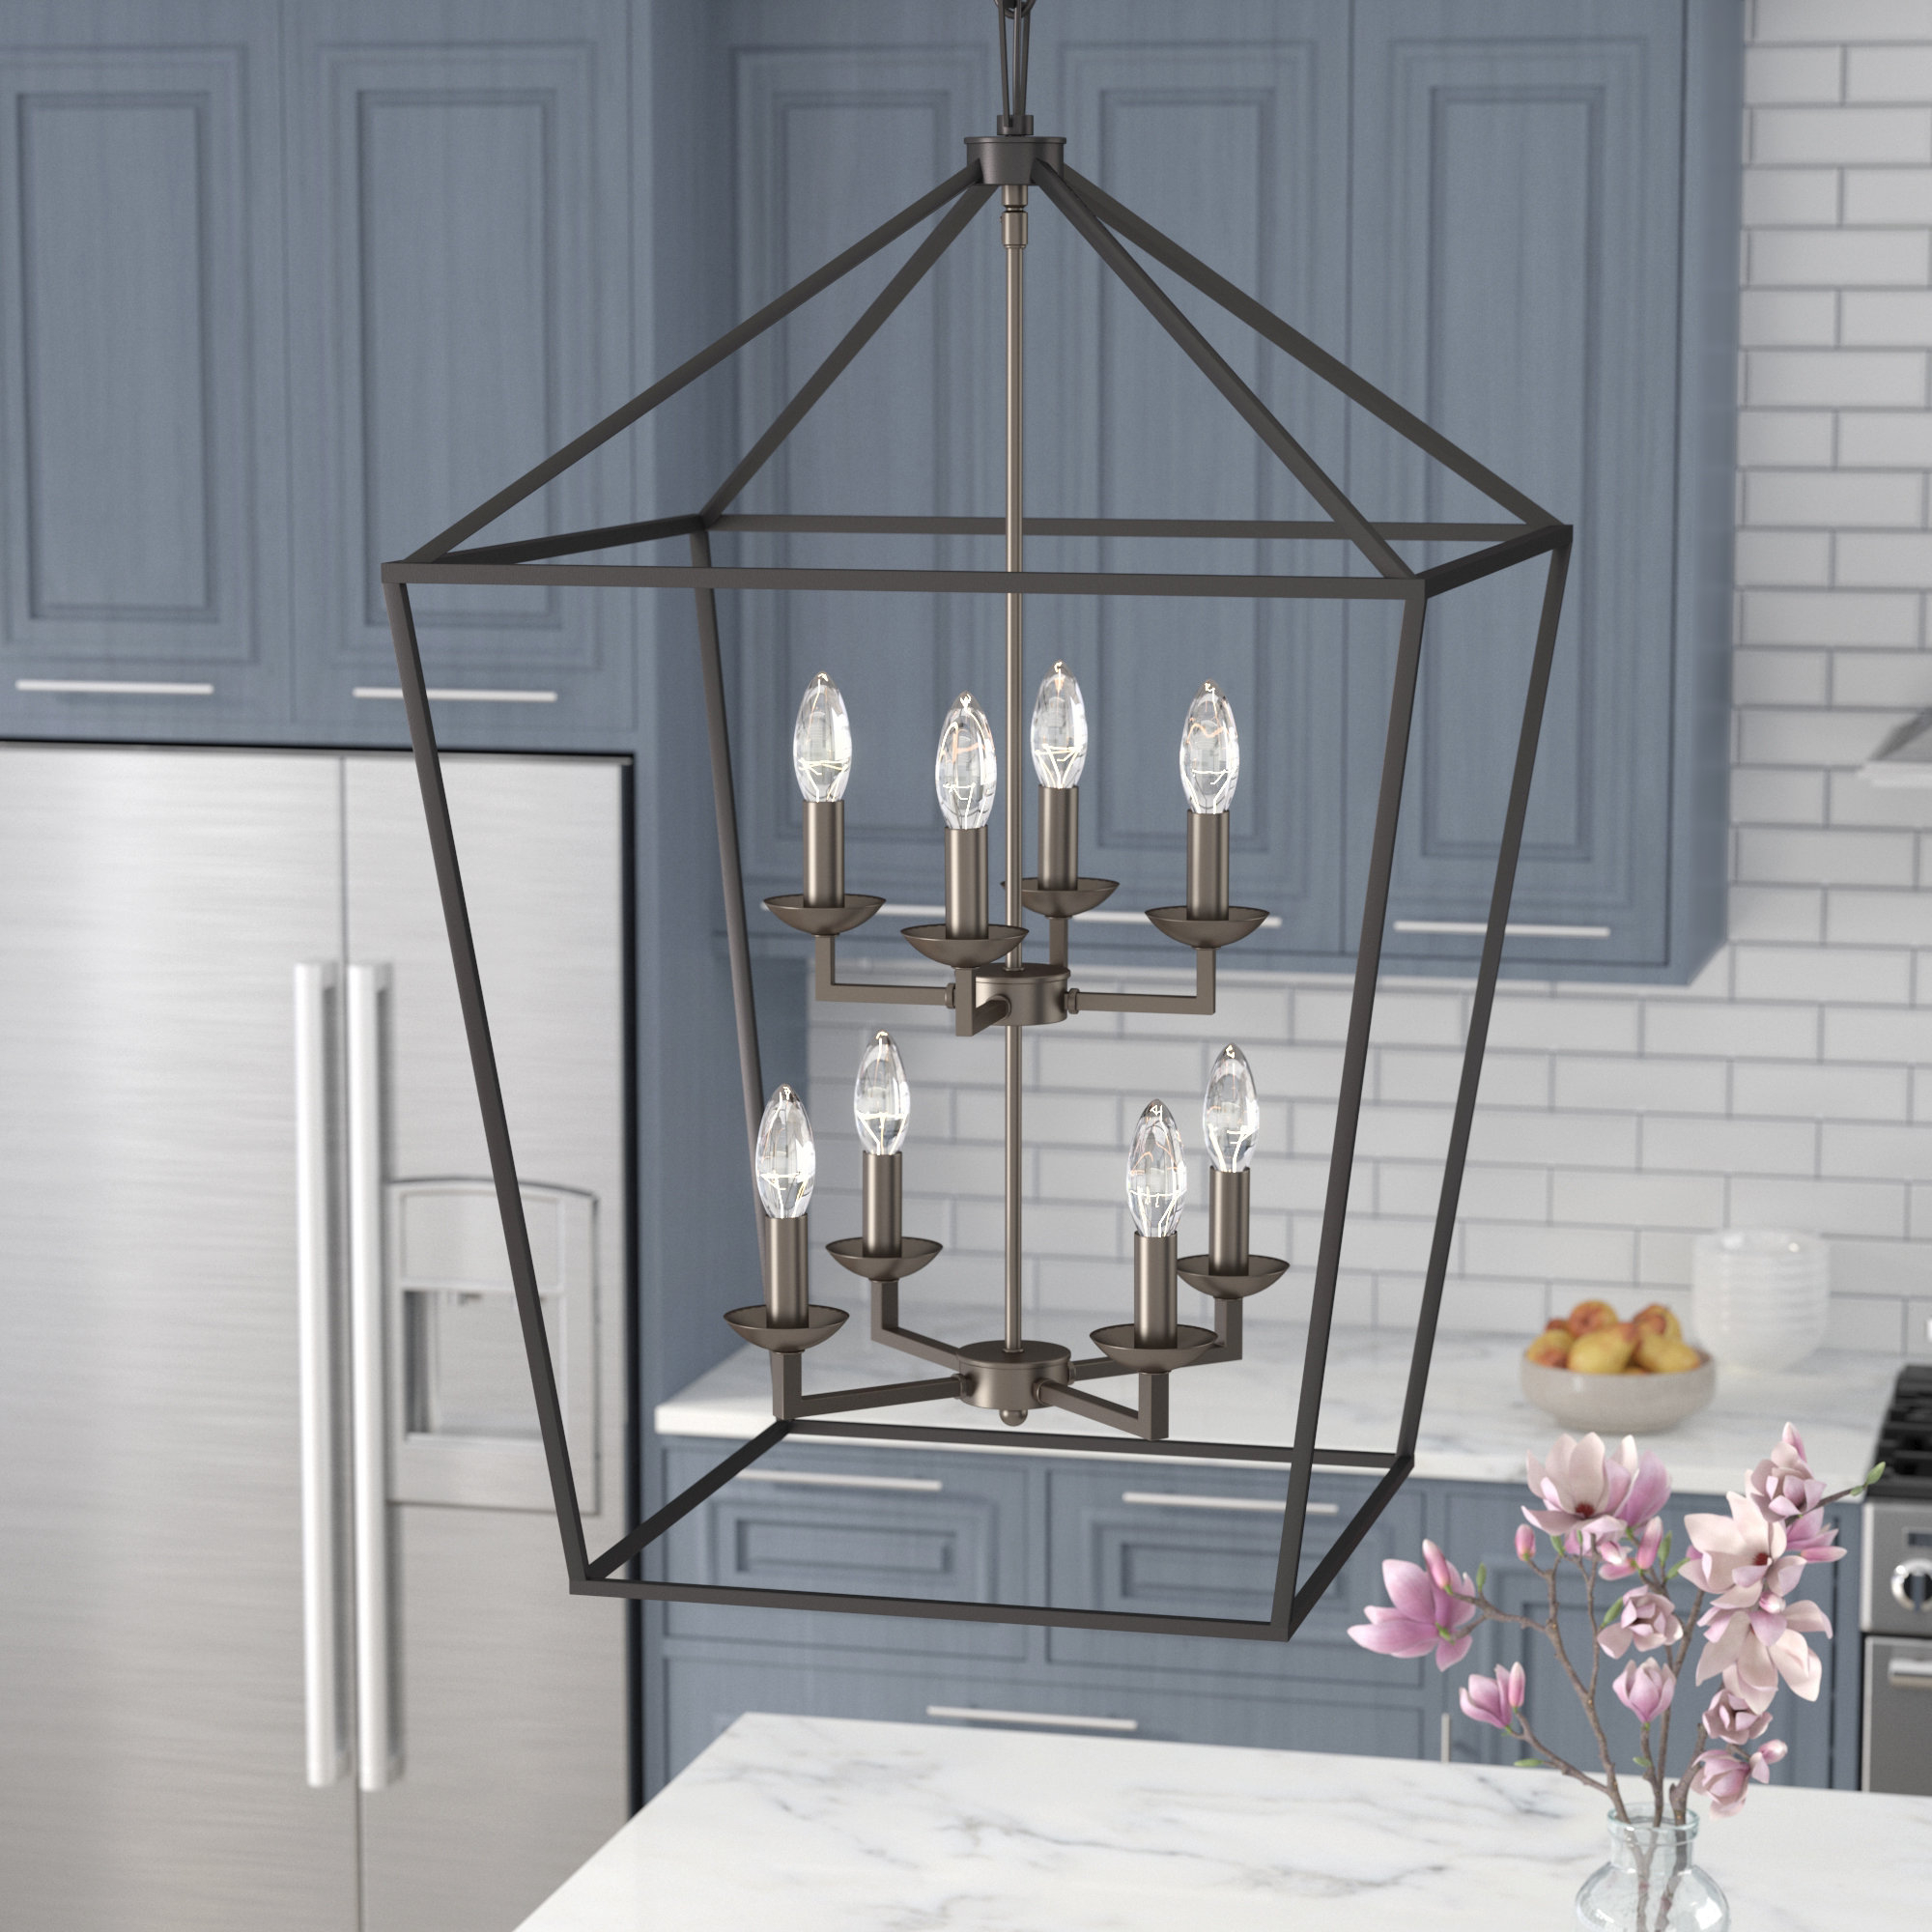 Most Current Carmen 8 Light Lantern Tiered Pendants Inside Carmen 8 Light Lantern Tiered Pendant (View 1 of 20)